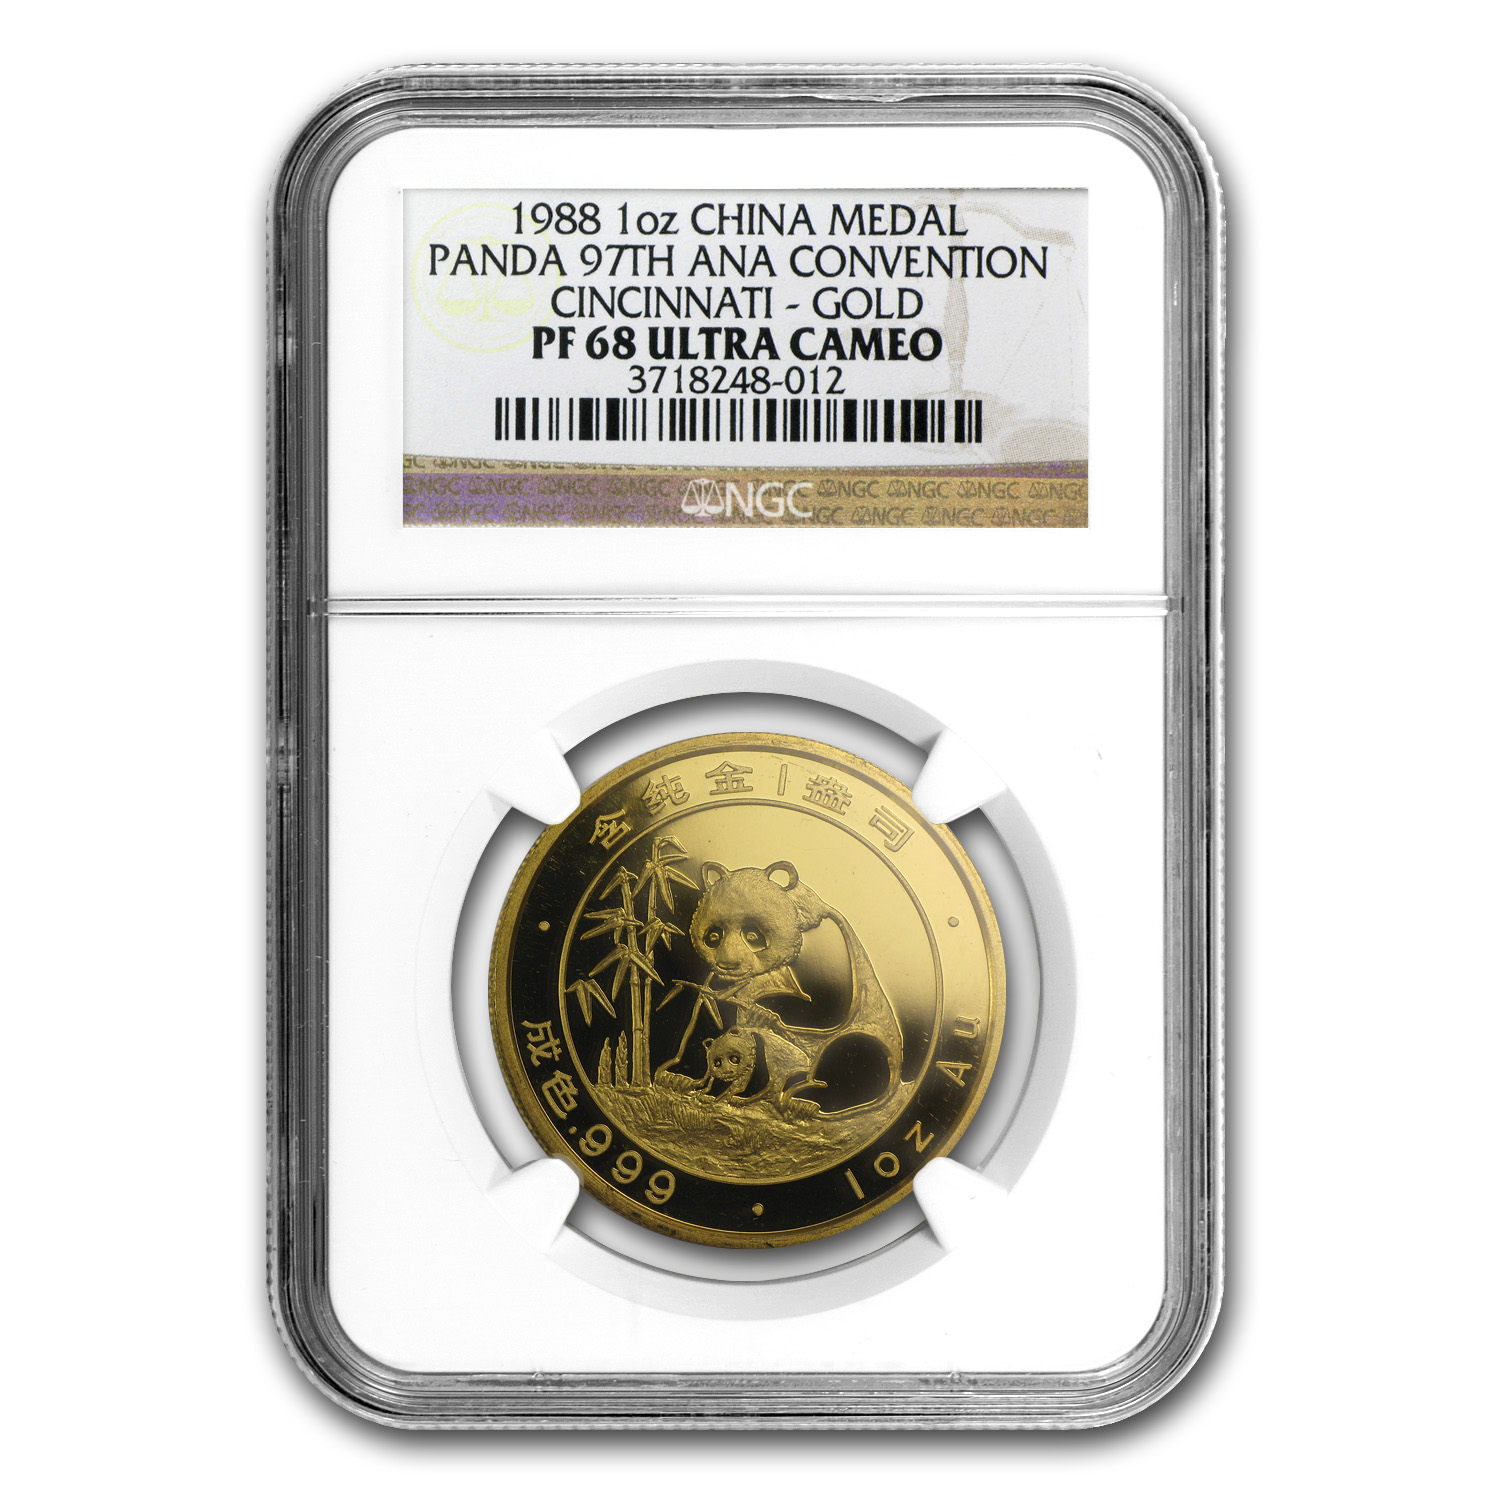 1988 1 oz Gold Chinese Panda Cincinatti ANA Convention PF-68 NGC